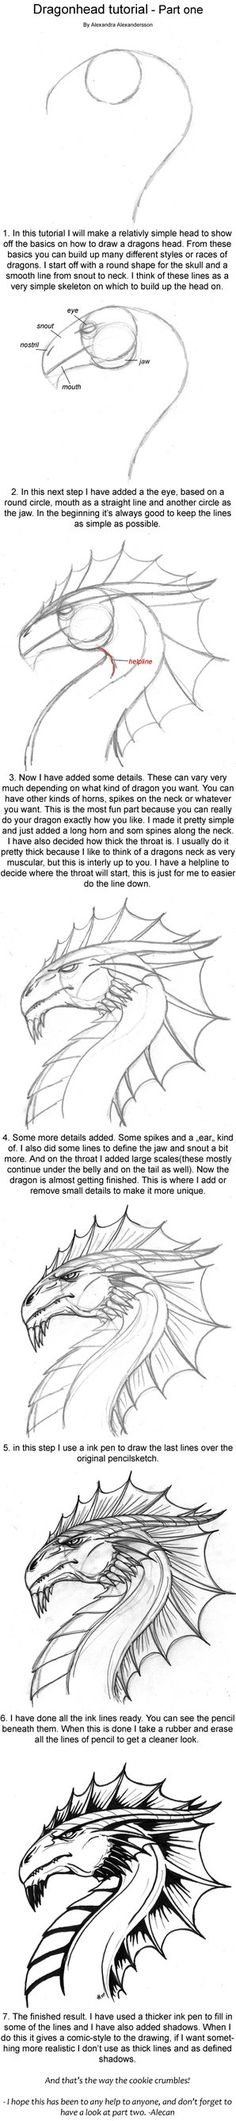 Dragonhead Tutorial part one by ~alecan on deviantART